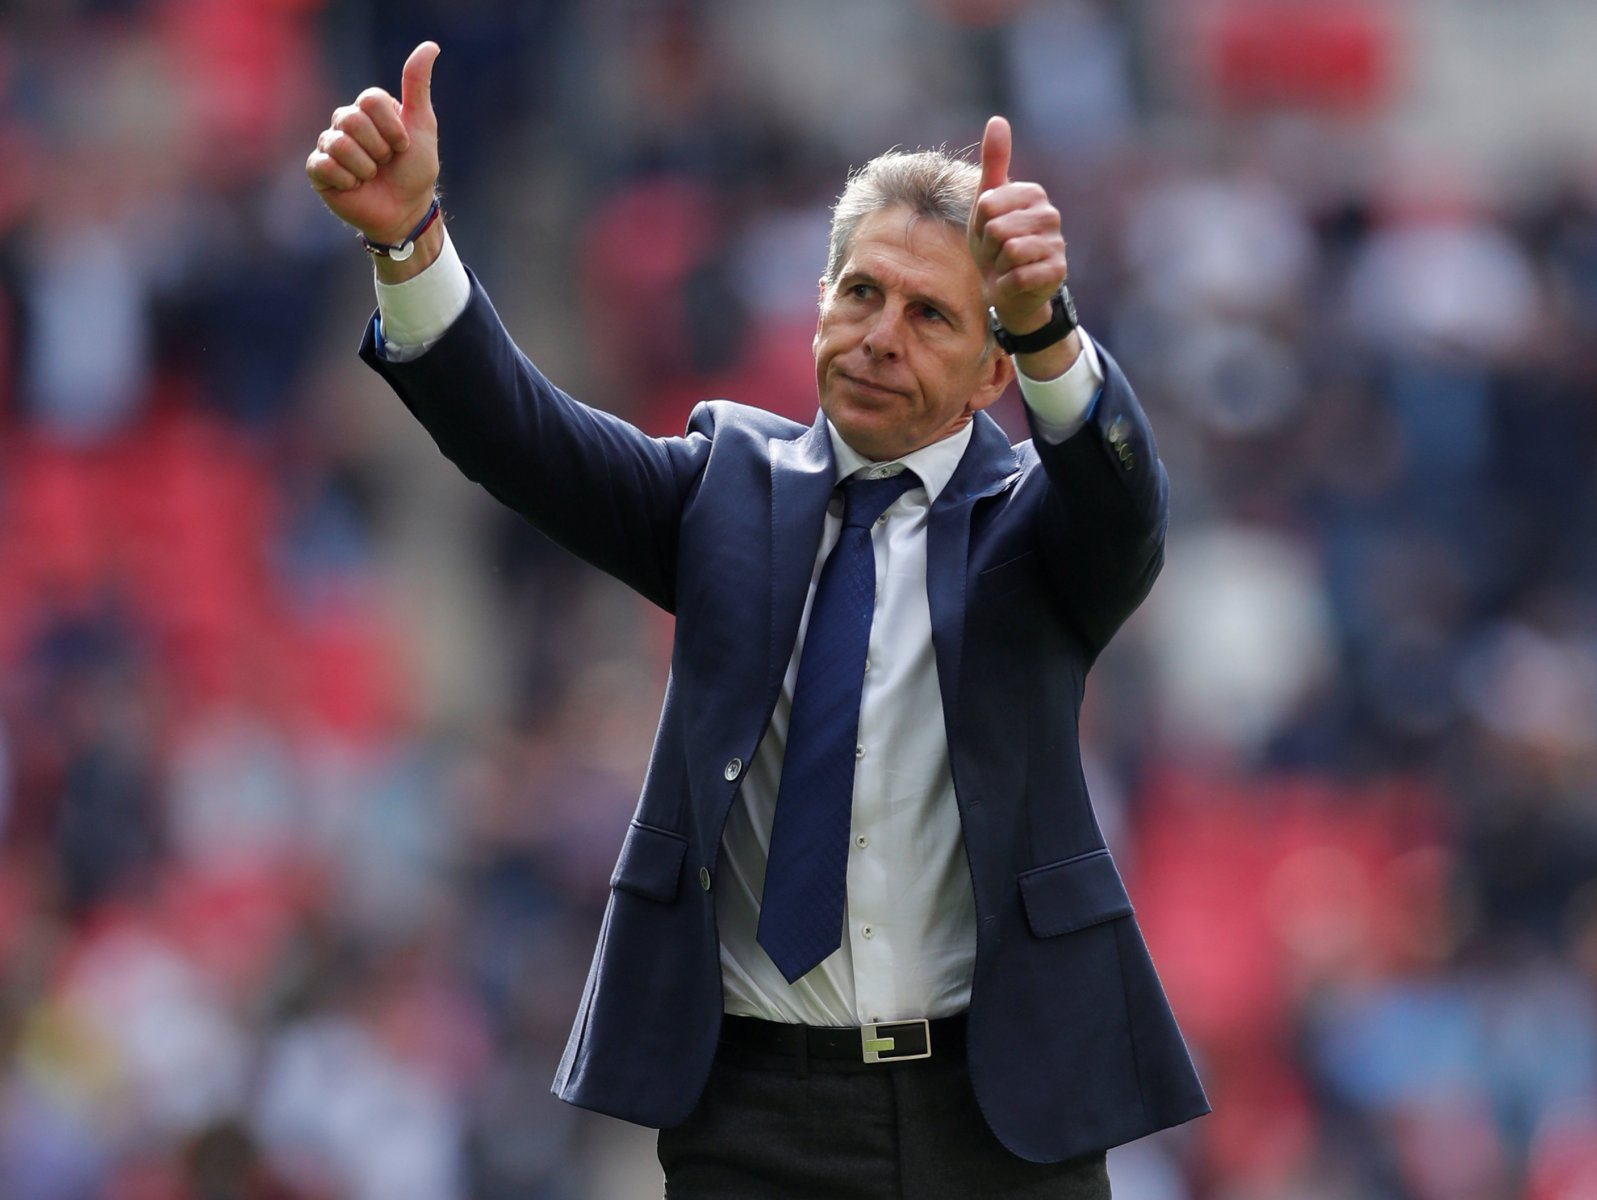 Leicester City fans take to Twitter to demand Puel's head after WOlves loss